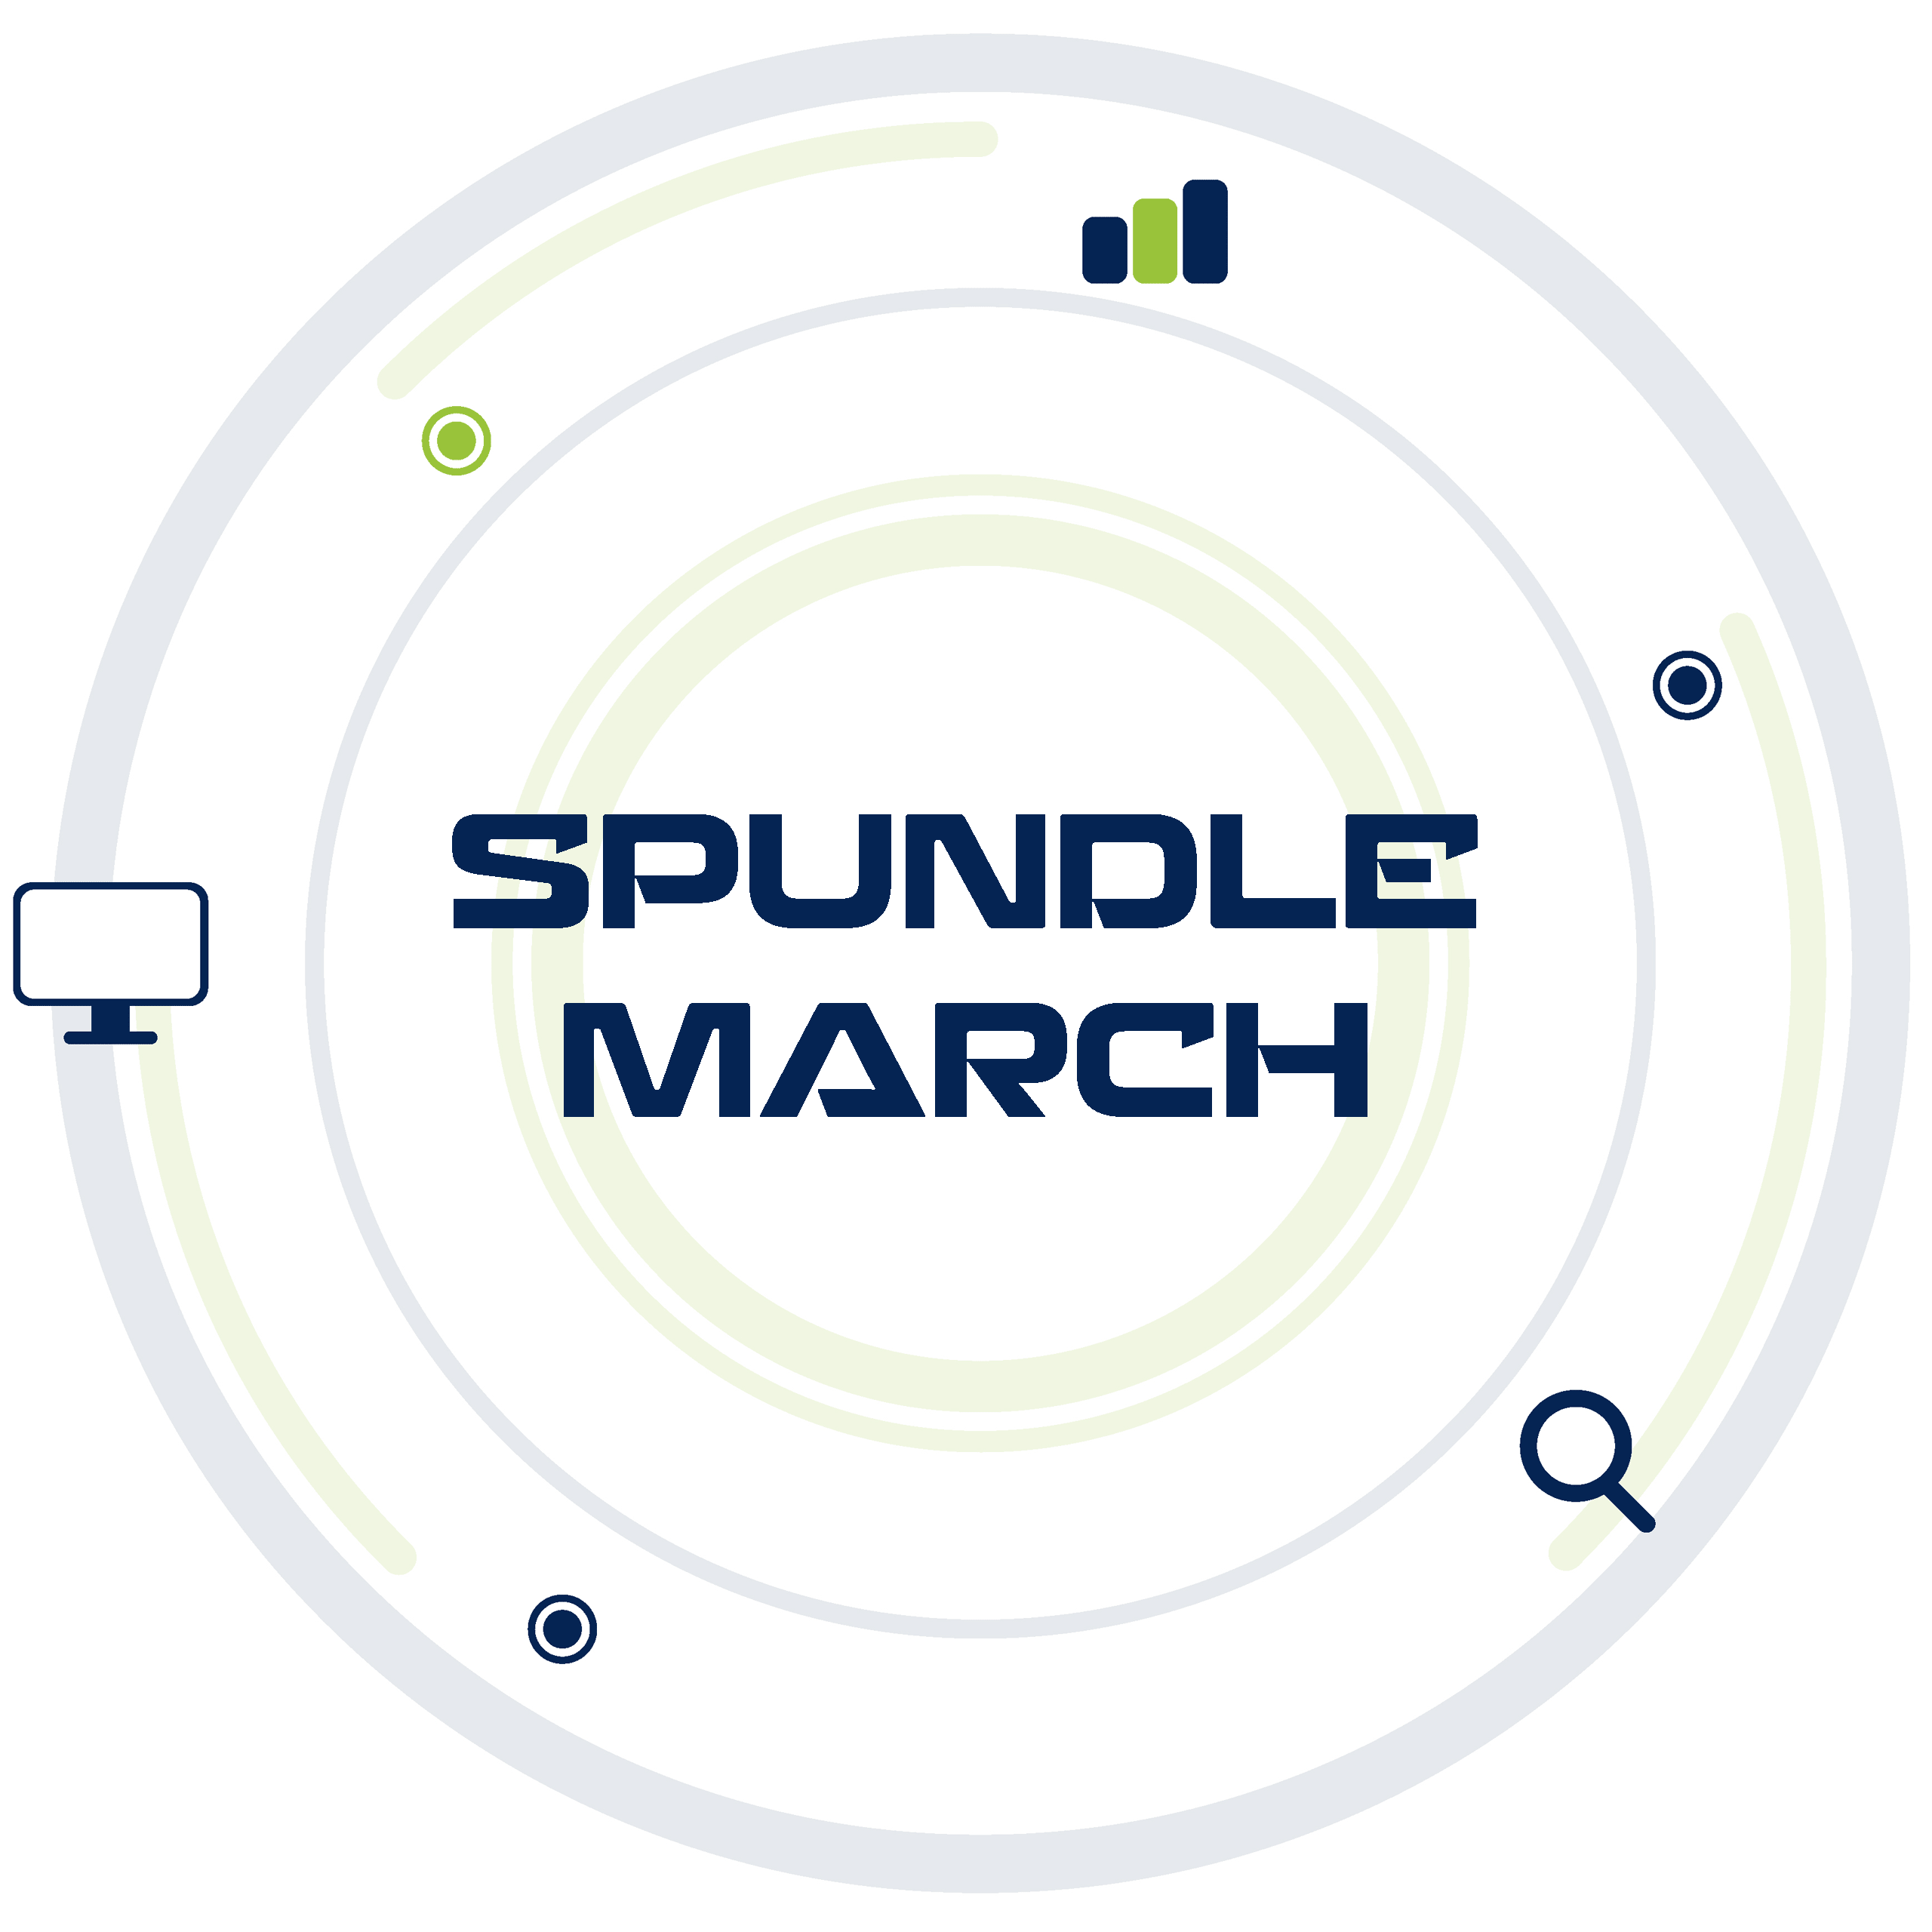 SPUNDLE Update – March 2021 image